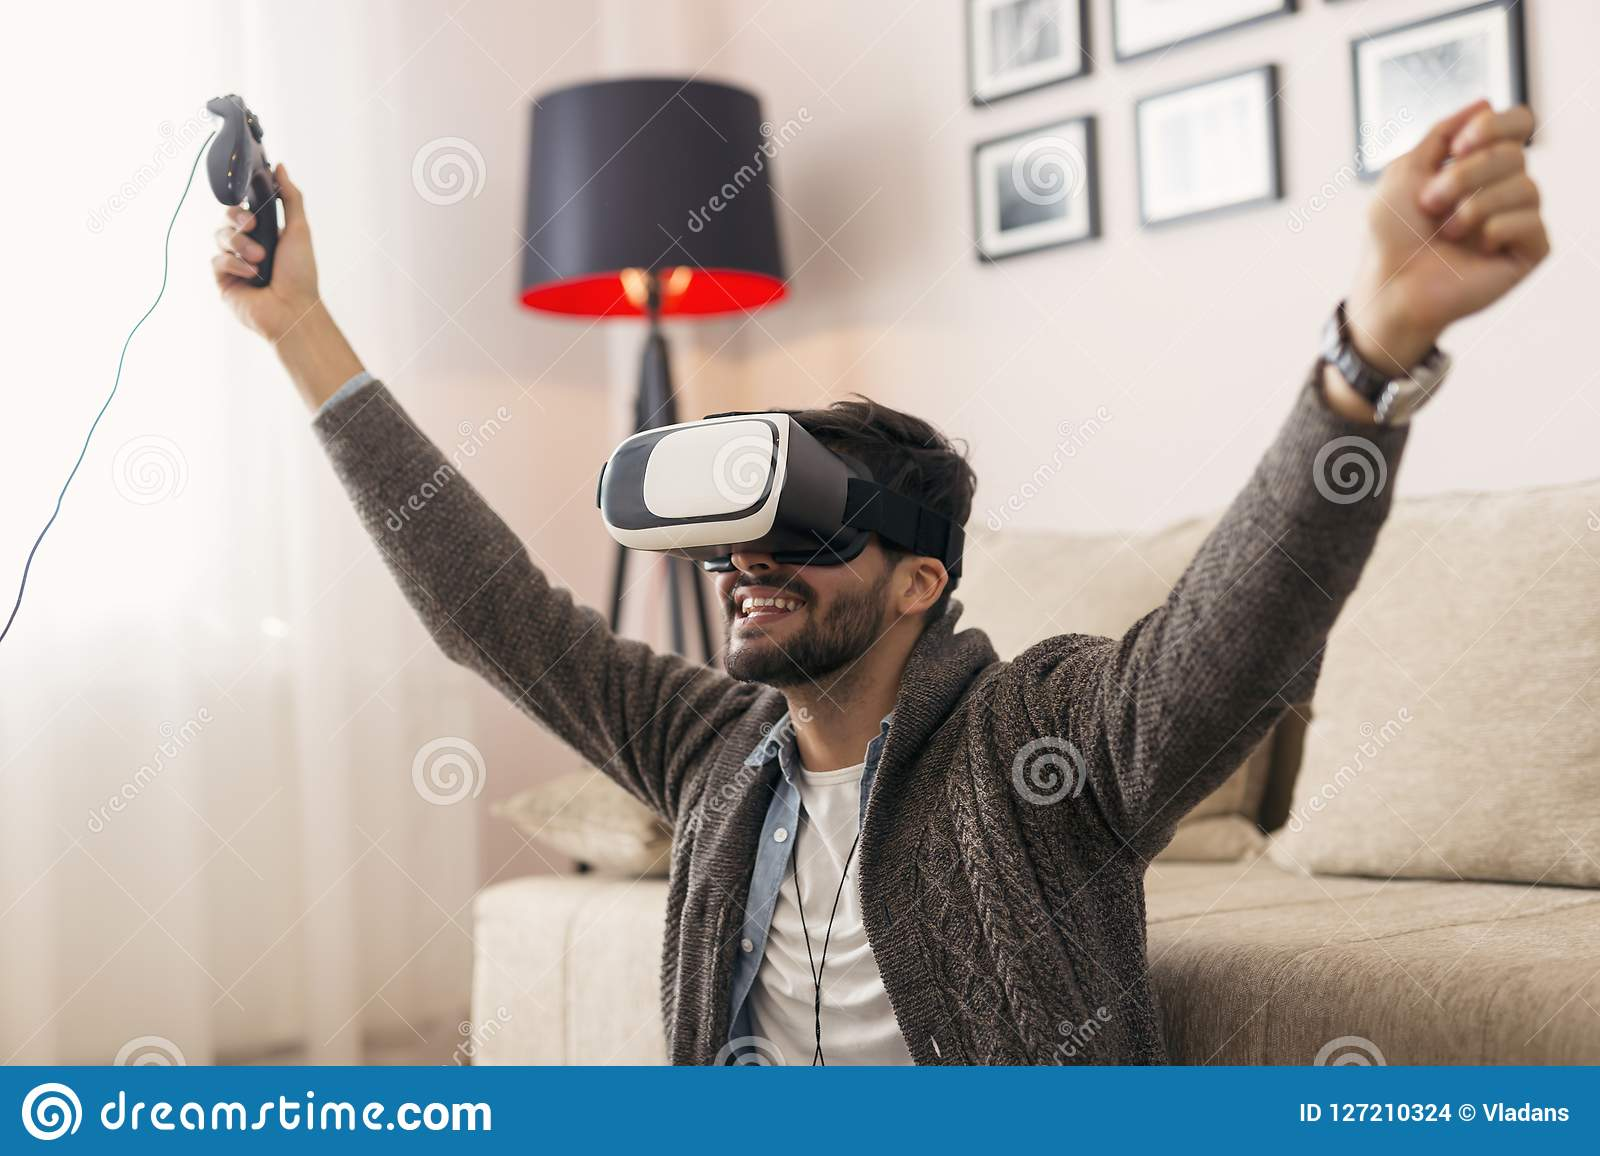 Playing a VR game